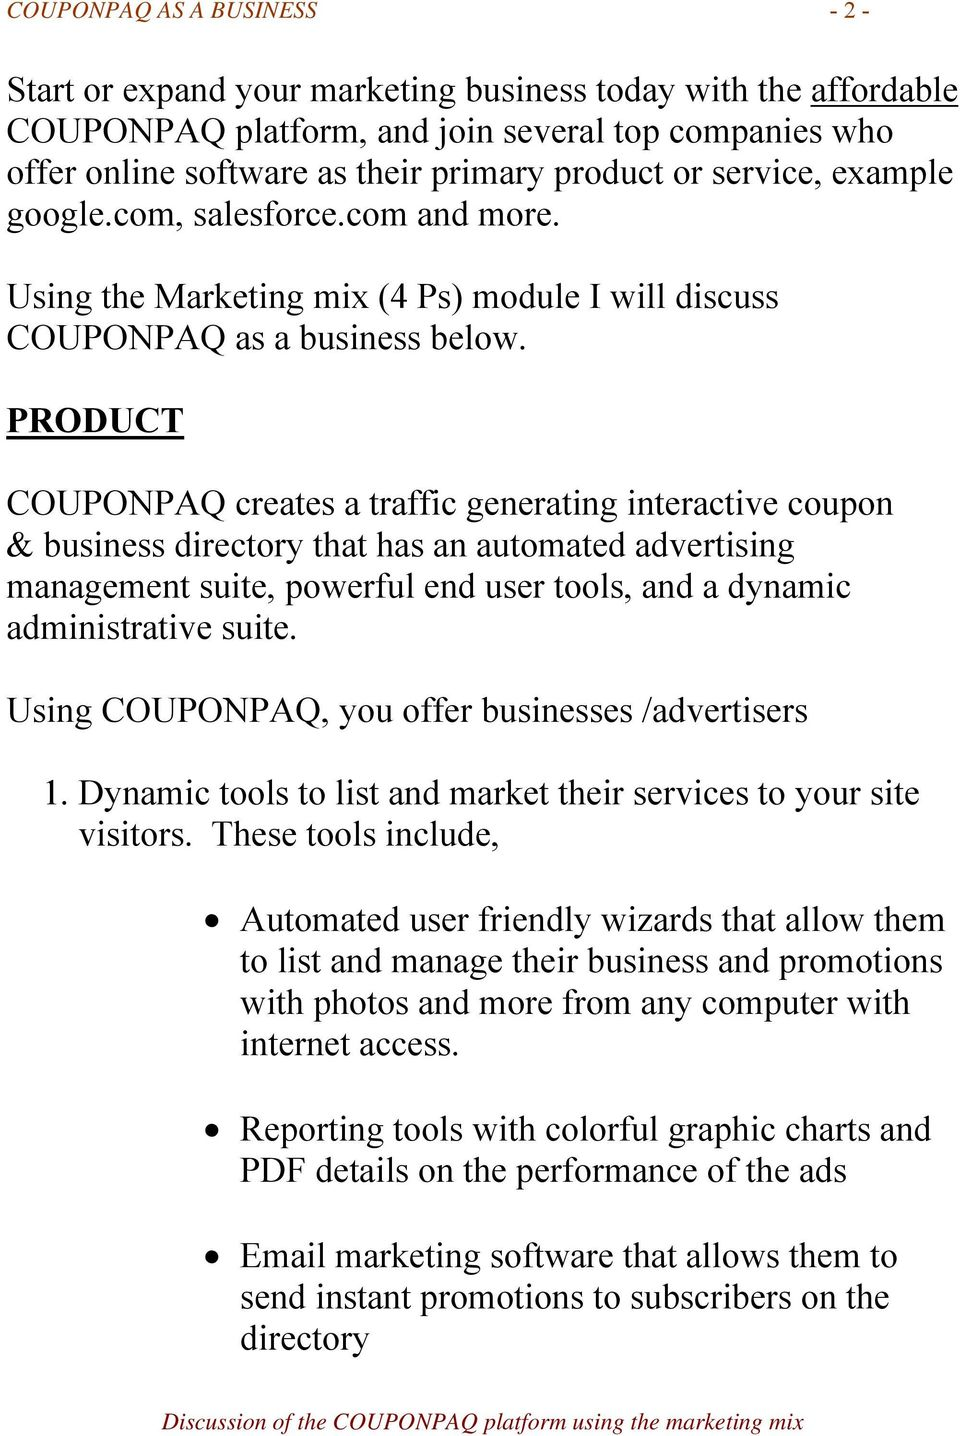 PRODUCT COUPONPAQ creates a traffic generating interactive coupon & business directory that has an automated advertising management suite, powerful end user tools, and a dynamic administrative suite.